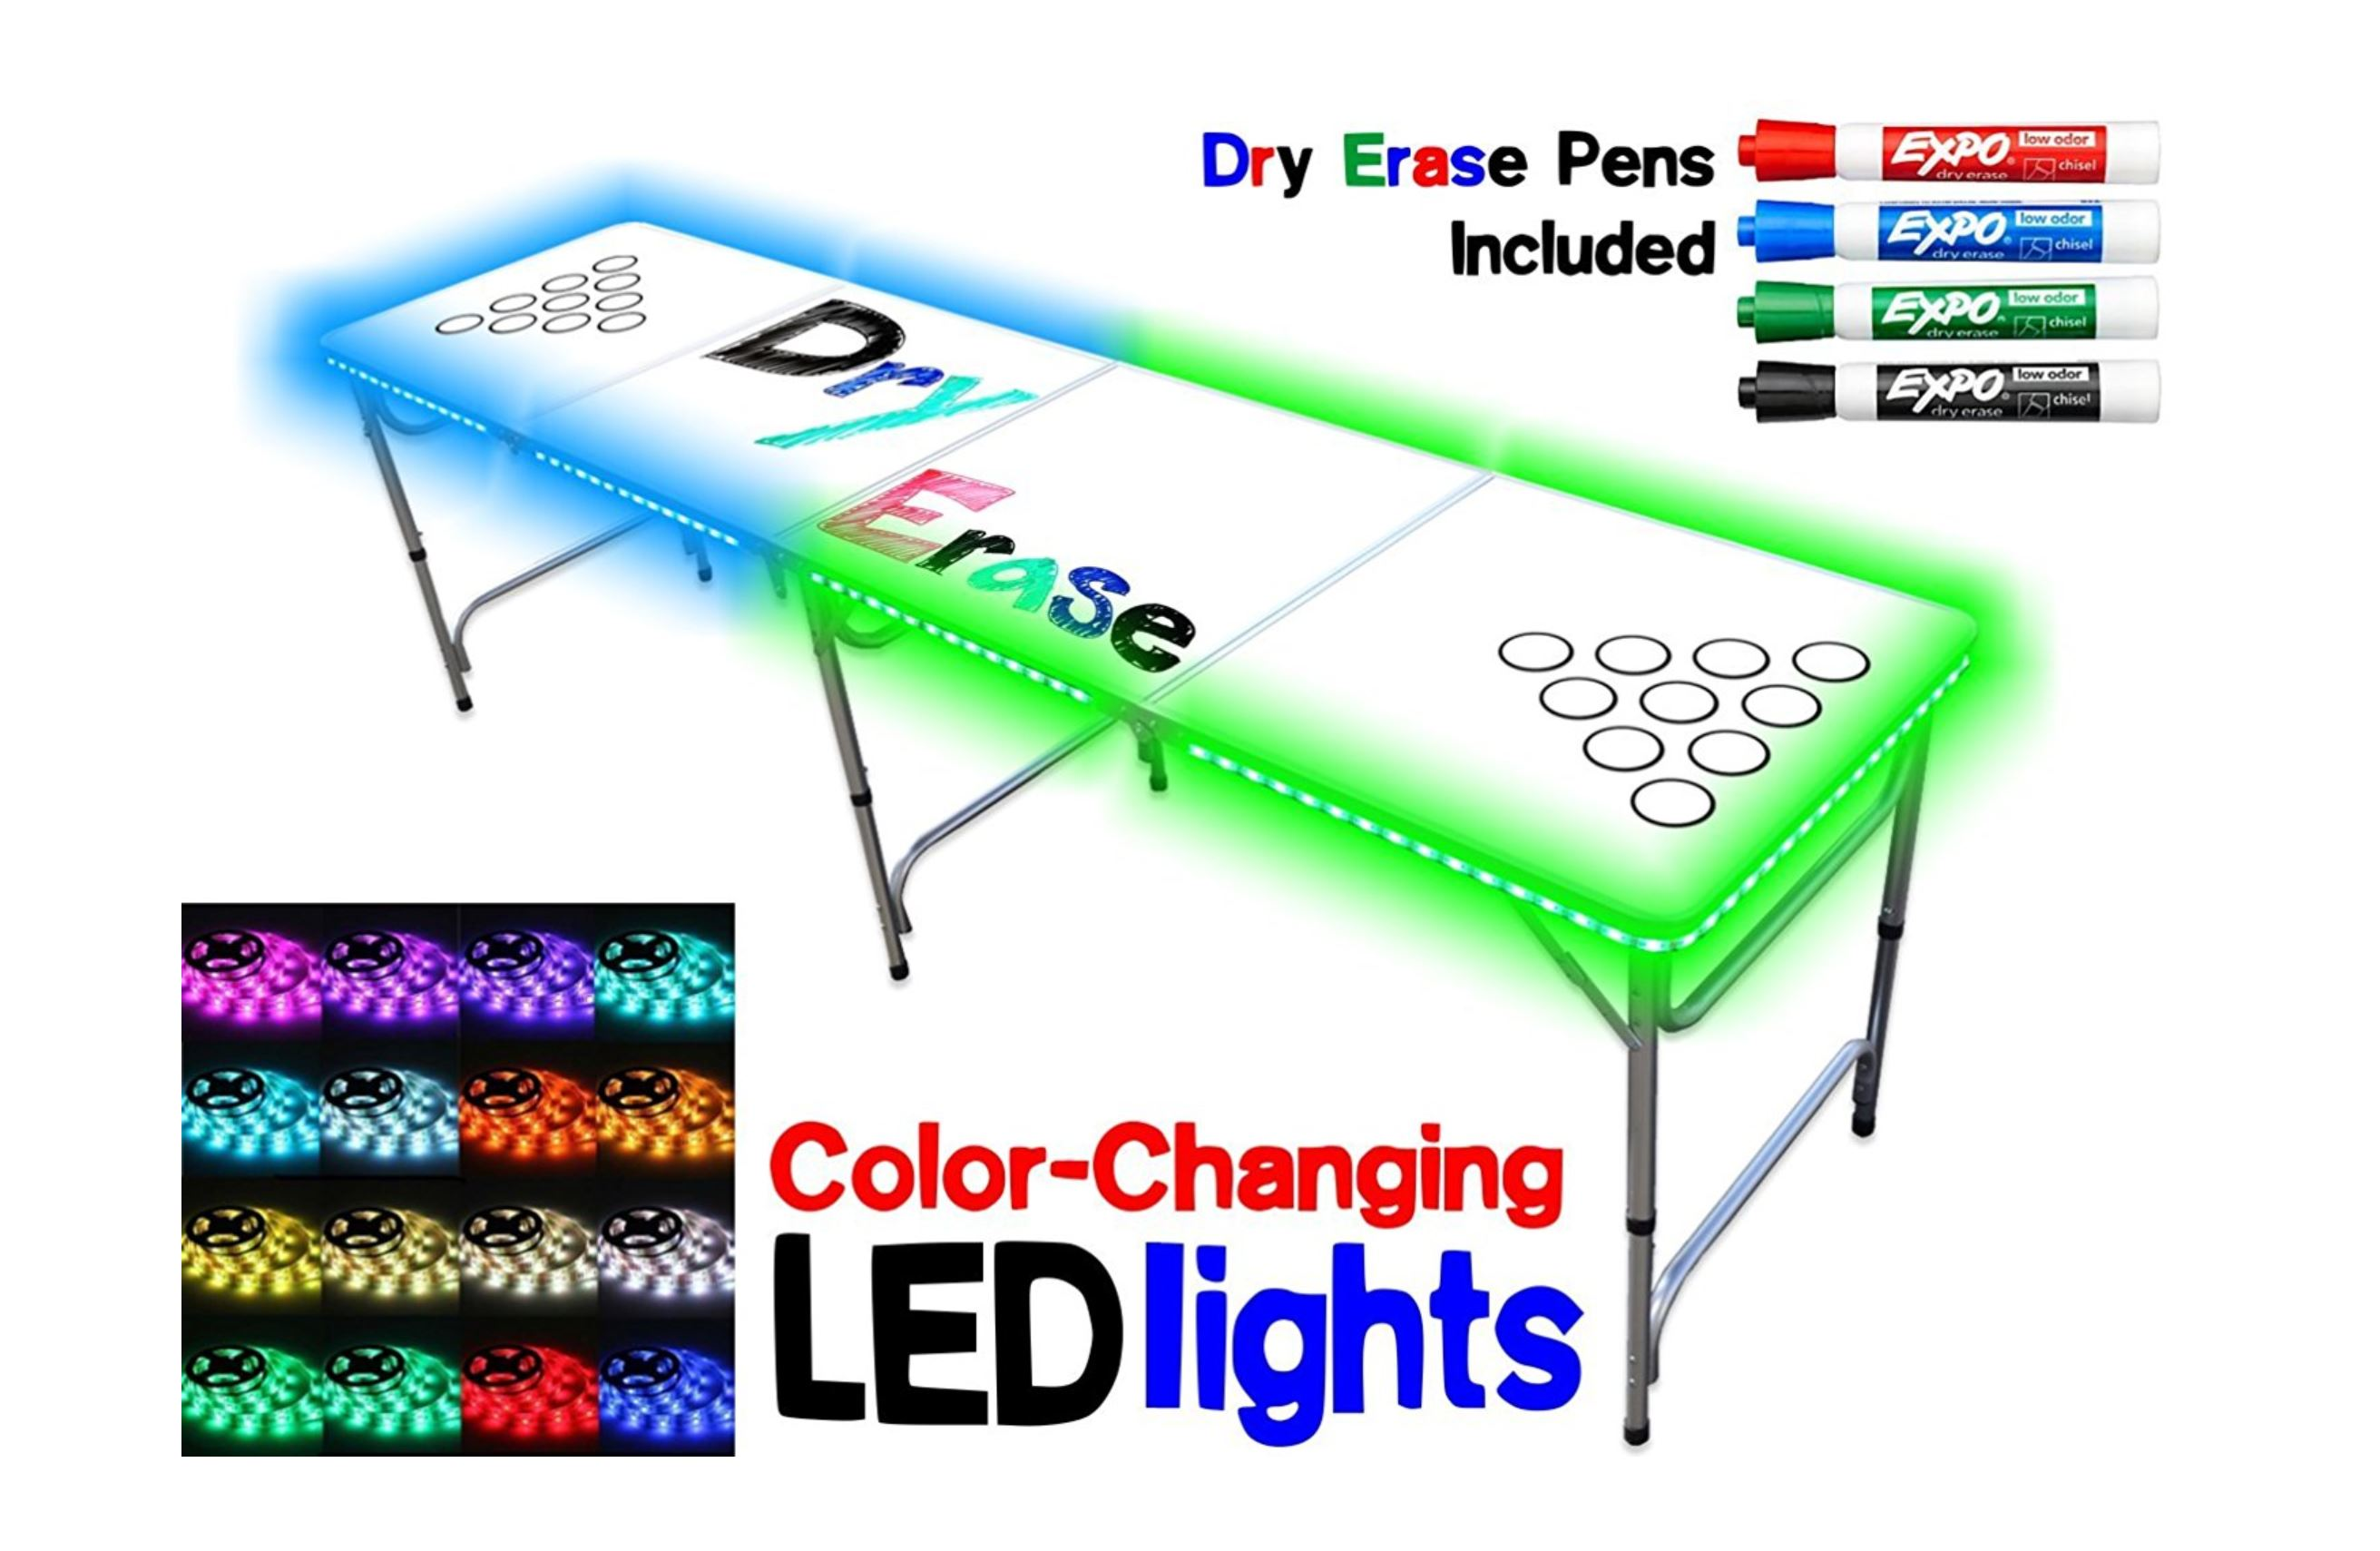 LED - Dry Eras Beer Pong Table - Party Rentals in South Florida - Wellington, FL 786-423-8759